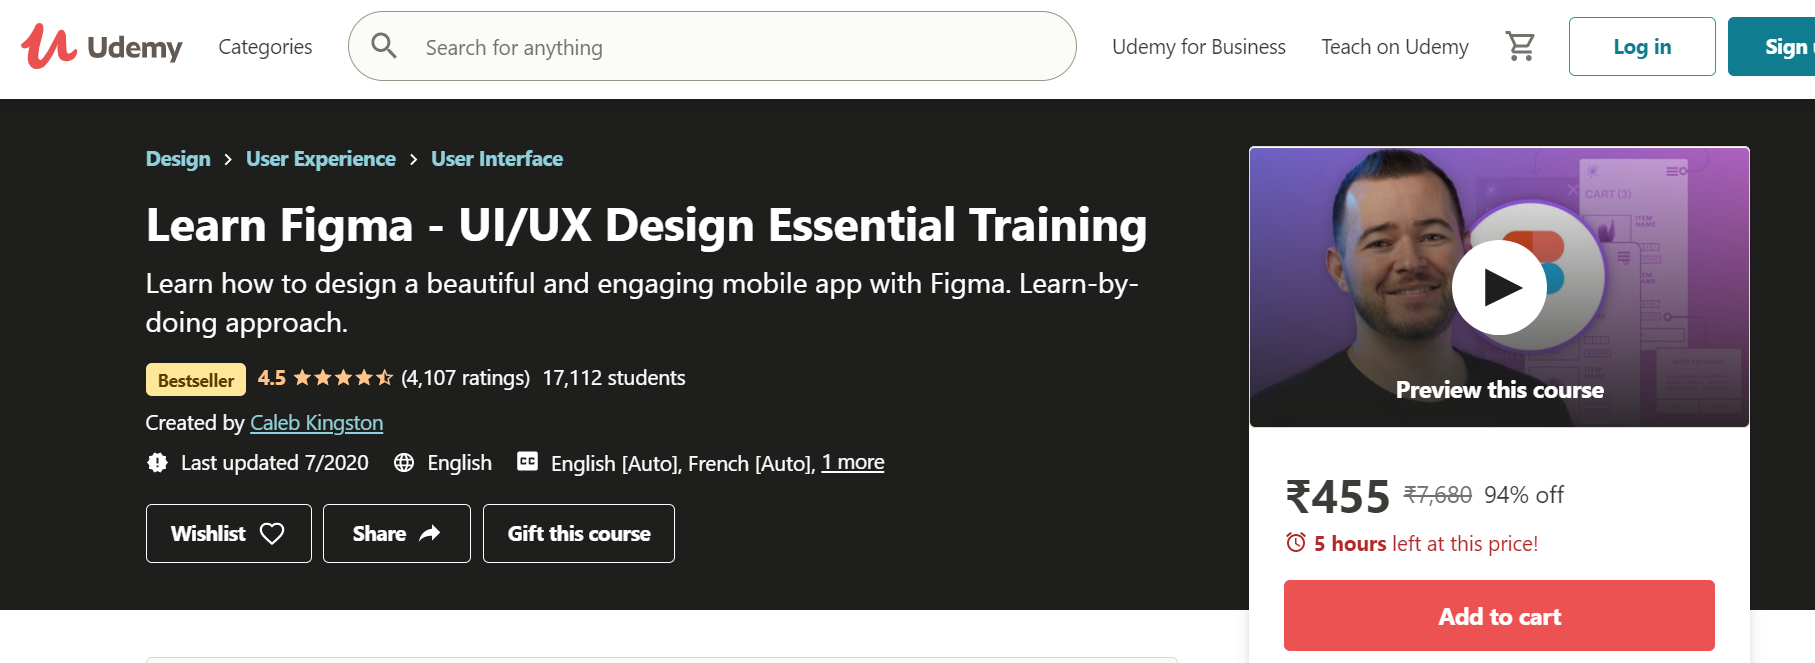 These Are The 5 Best Ui Ux Design Courses Available Online Techparams By Techparams Aug 2020 Medium